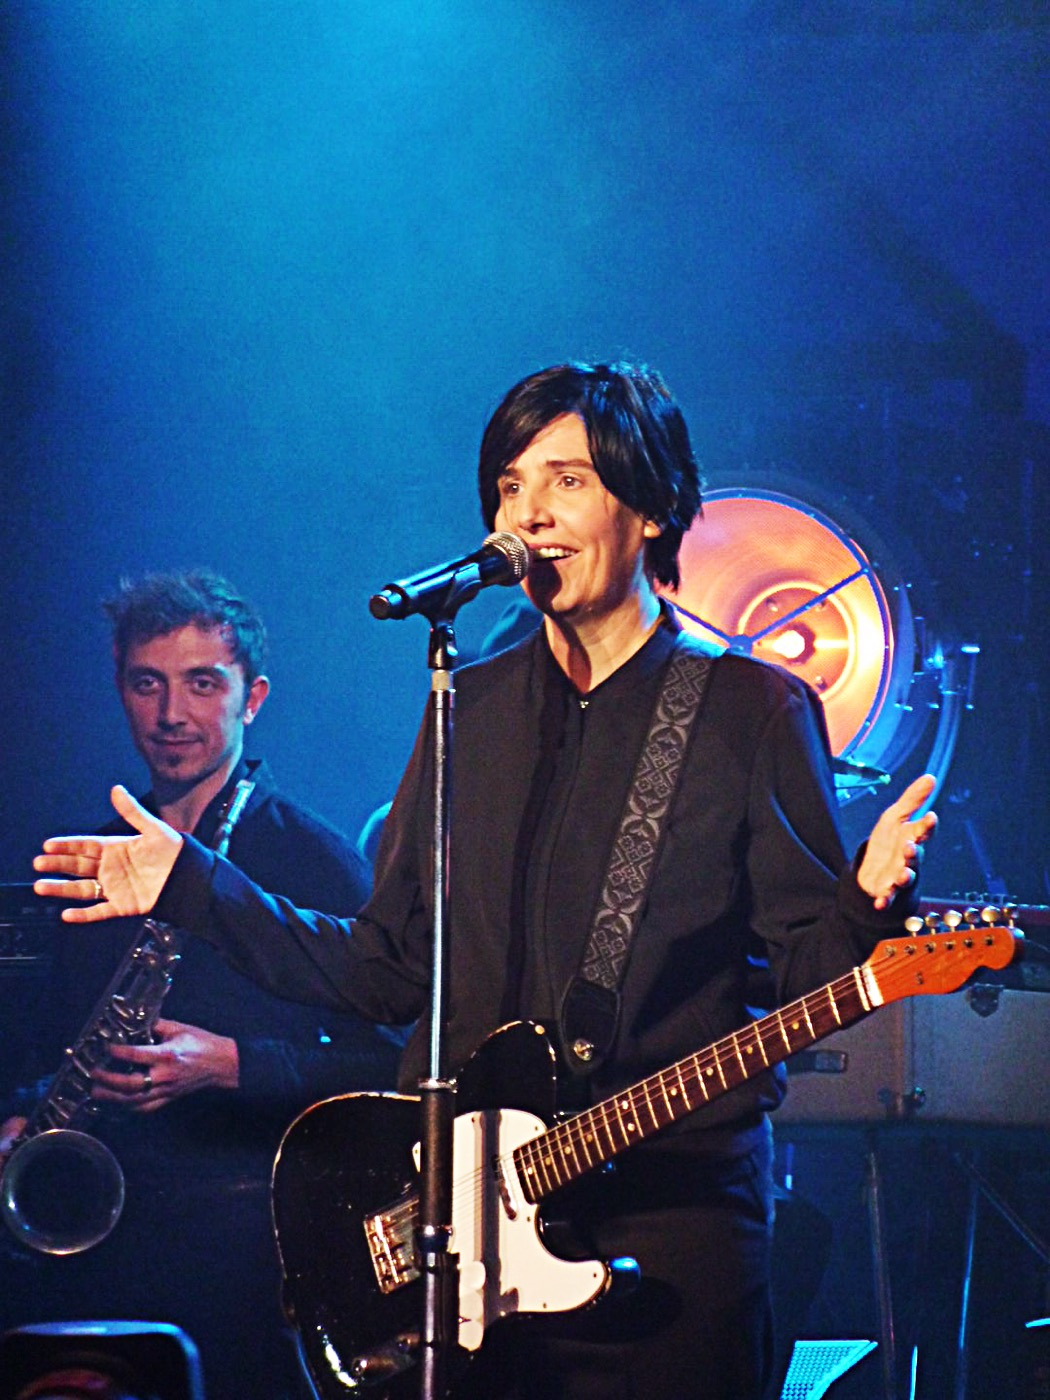 Alcaline groupe Texas band Sharleen Spiteri live concert Le Trianon Paris émission musicale 30 avril 2015 france 2 Texas 25 photo by United States of Paris blog